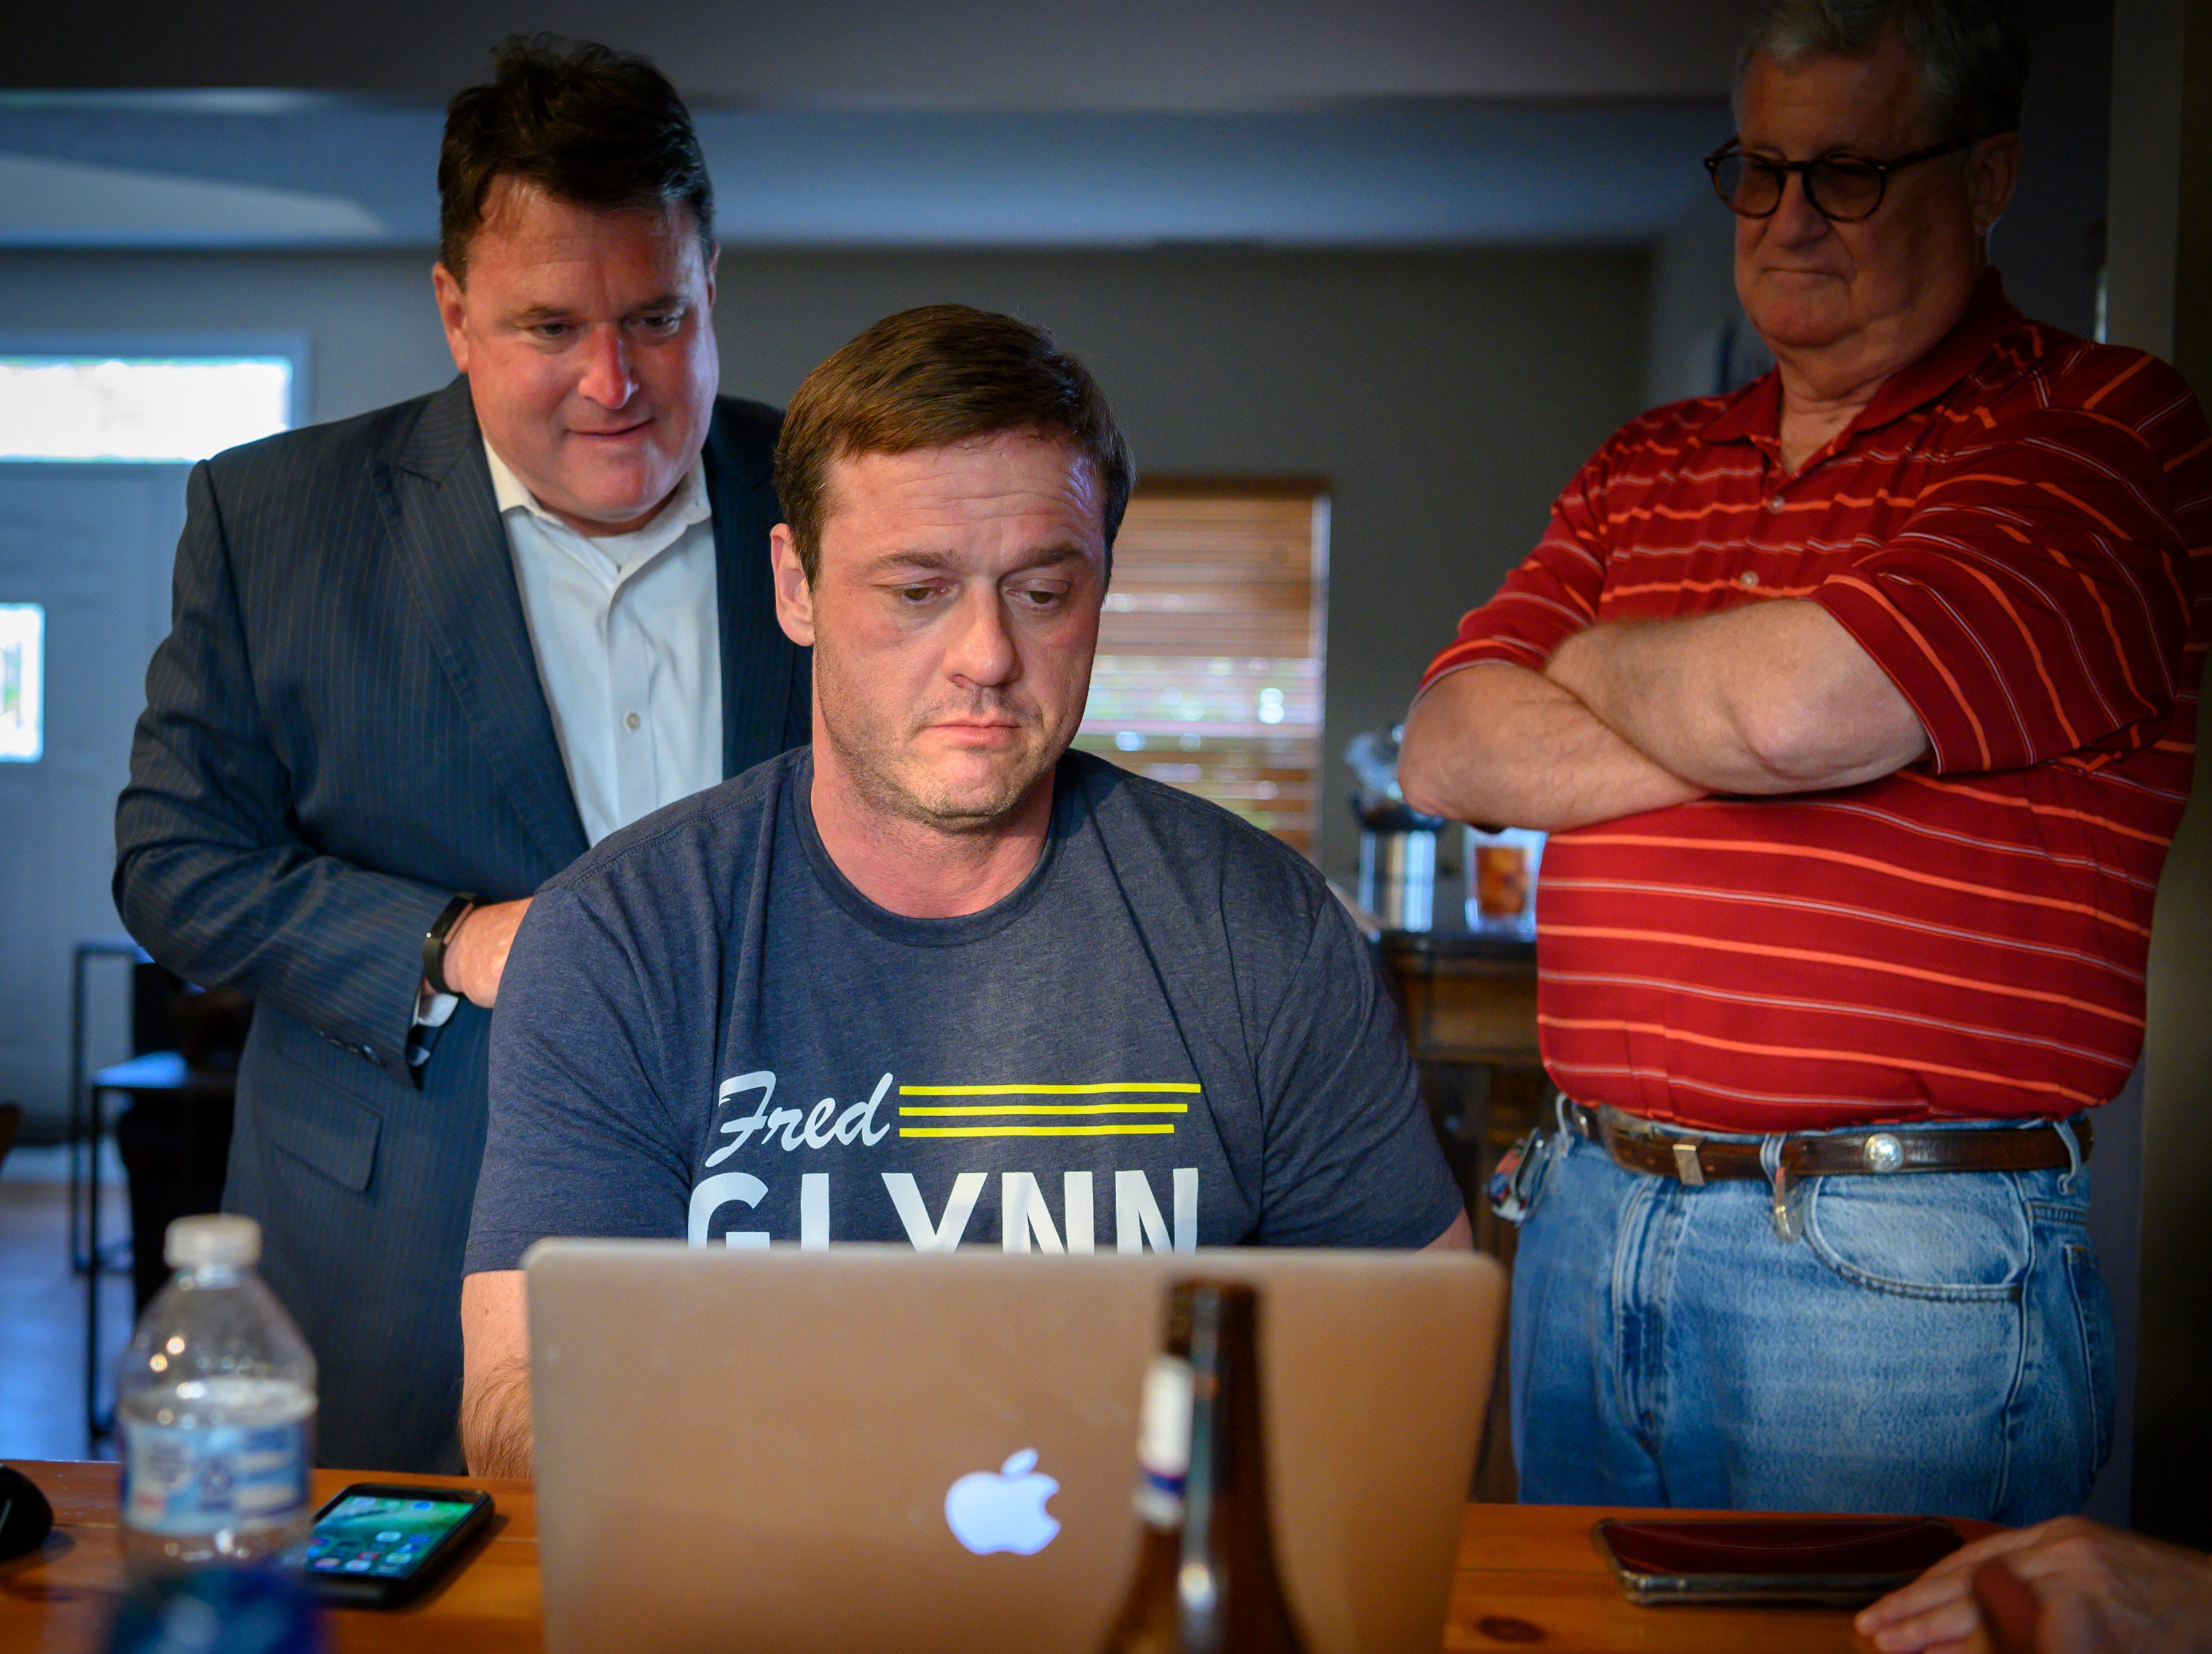 Fred Glynn watches for poll results on his computer. Family, friends and supporters gathered at the home of the Carmel mayoral candidate as election results were publicized, Tuesday, May 7, 2019. Glynn campaigned for the office in hopes of unseating incumbent Jim Brainard who was seeking his seventh term in the office.